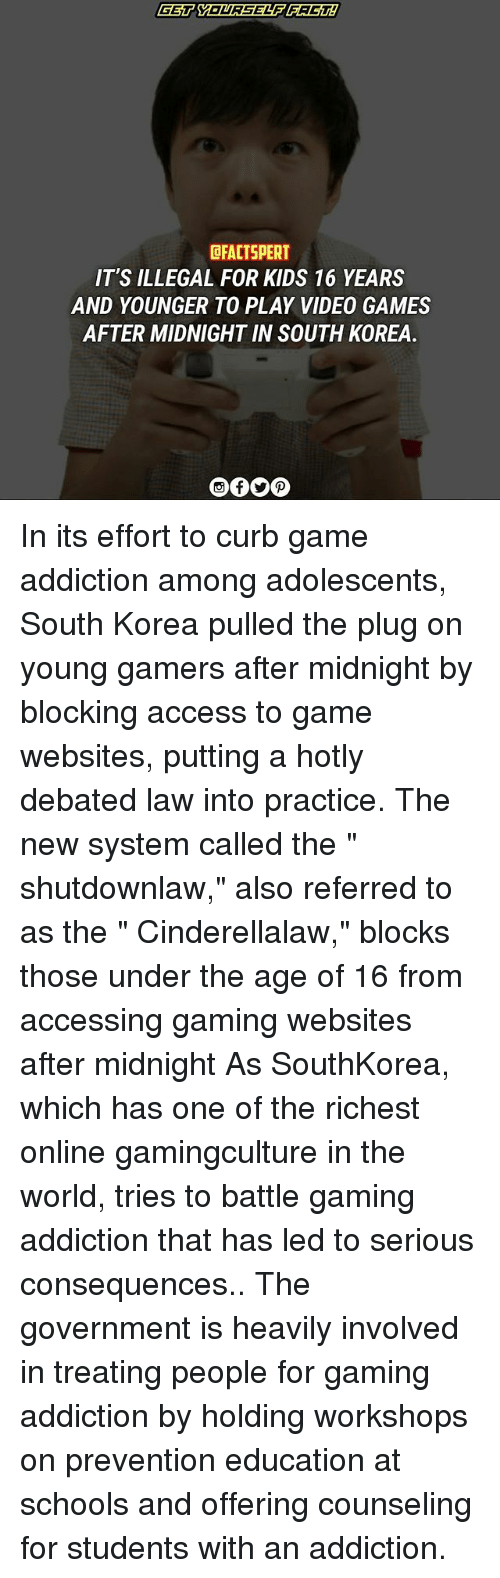 "Curbing: CFACTSPERT  IT'S ILLEGAL FOR KIDS 16 YEARS  AND YOUNGER TO PLAY VIDEO GAMES  AFTER MIDNIGHT IN SOUTH KOREA In its effort to curb game addiction among adolescents, South Korea pulled the plug on young gamers after midnight by blocking access to game websites, putting a hotly debated law into practice. The new system called the "" shutdownlaw,"" also referred to as the "" Cinderellalaw,"" blocks those under the age of 16 from accessing gaming websites after midnight As SouthKorea, which has one of the richest online gamingculture in the world, tries to battle gaming addiction that has led to serious consequences.. The government is heavily involved in treating people for gaming addiction by holding workshops on prevention education at schools and offering counseling for students with an addiction."